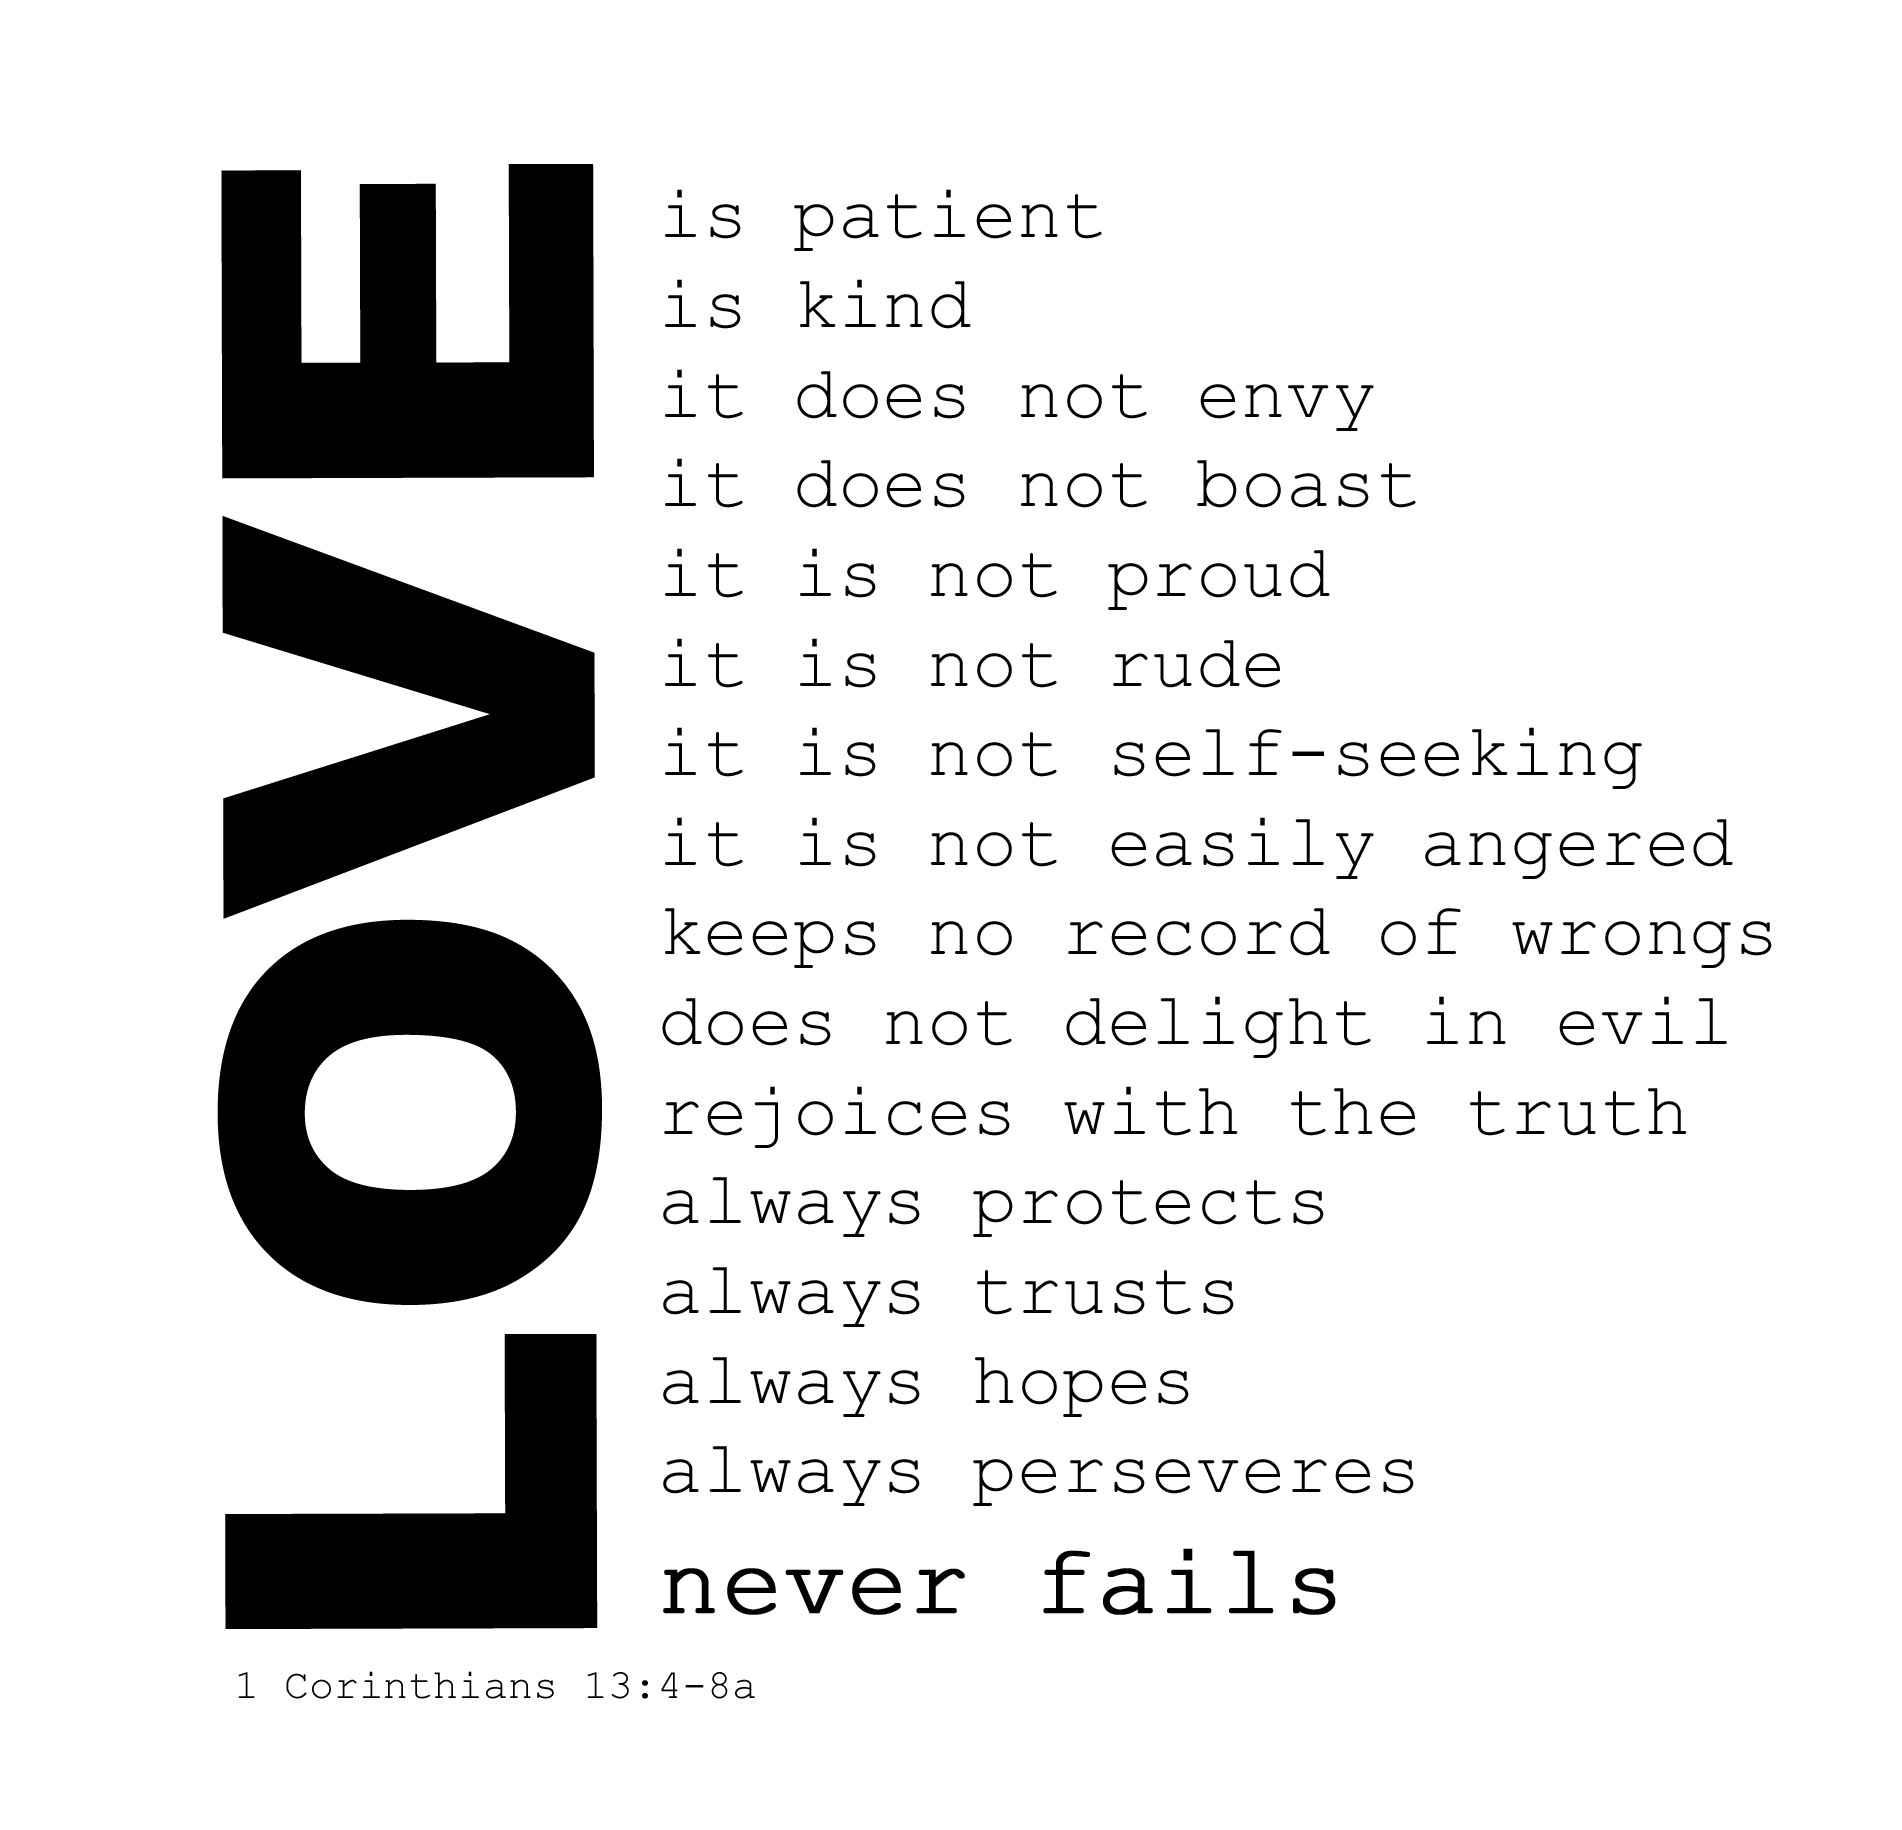 0d3bf6ddedece0 1 Corinthians 13 4-7 Love is patient and kind  love does not envy or boast   it is not arrogant or rude. It does not insist on its own way  ...